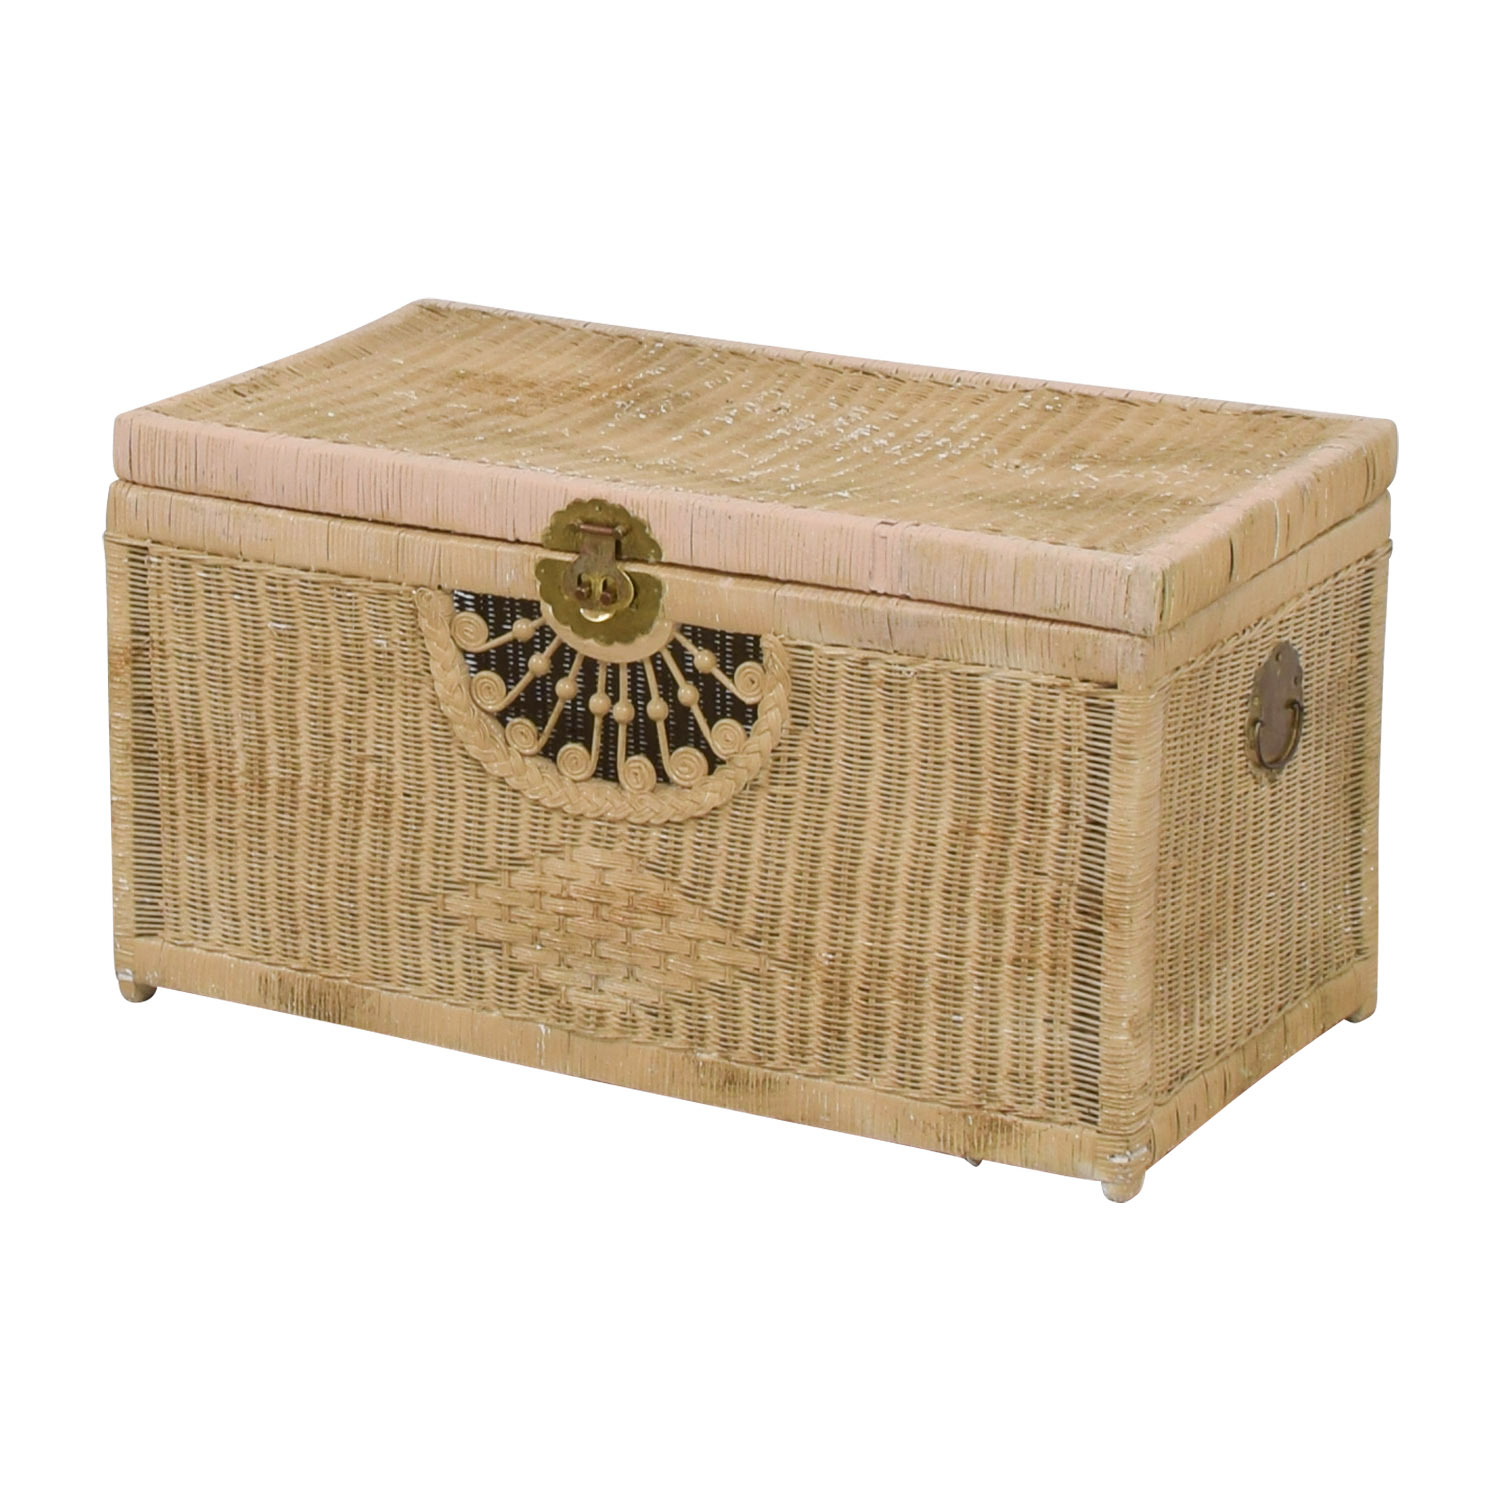 Pier 1 Imports Pier 1 Imports Natural Wicker Trunk nyc